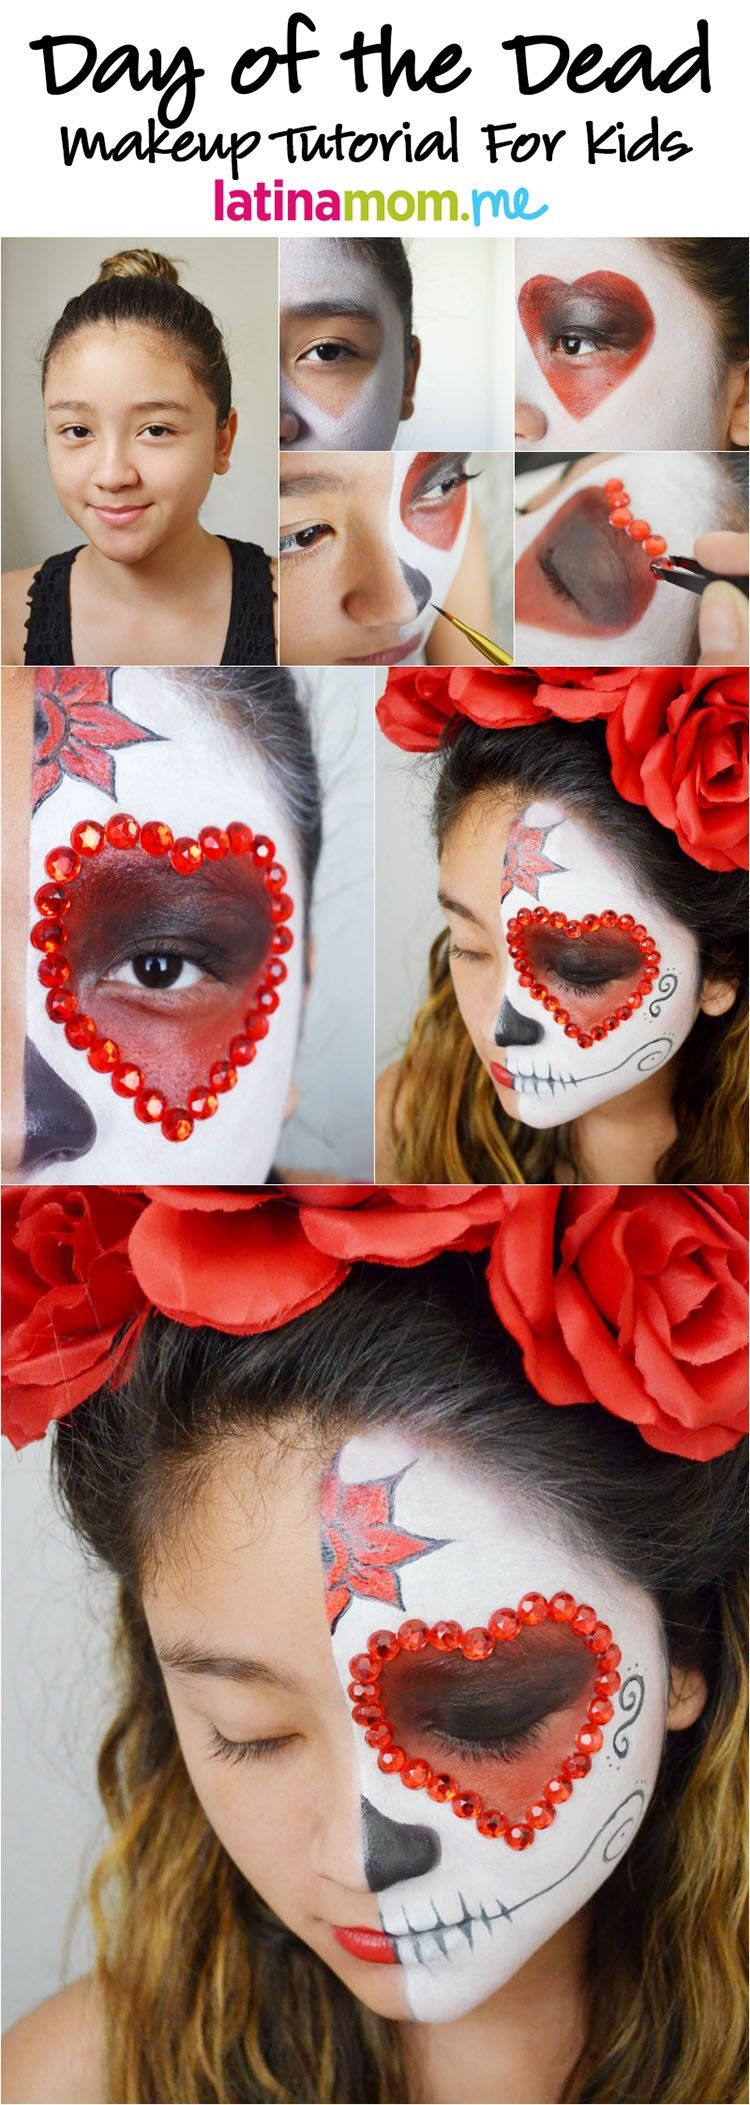 Day of the Dead Face Painting Tutorial for Kids | Sugar skull face ...